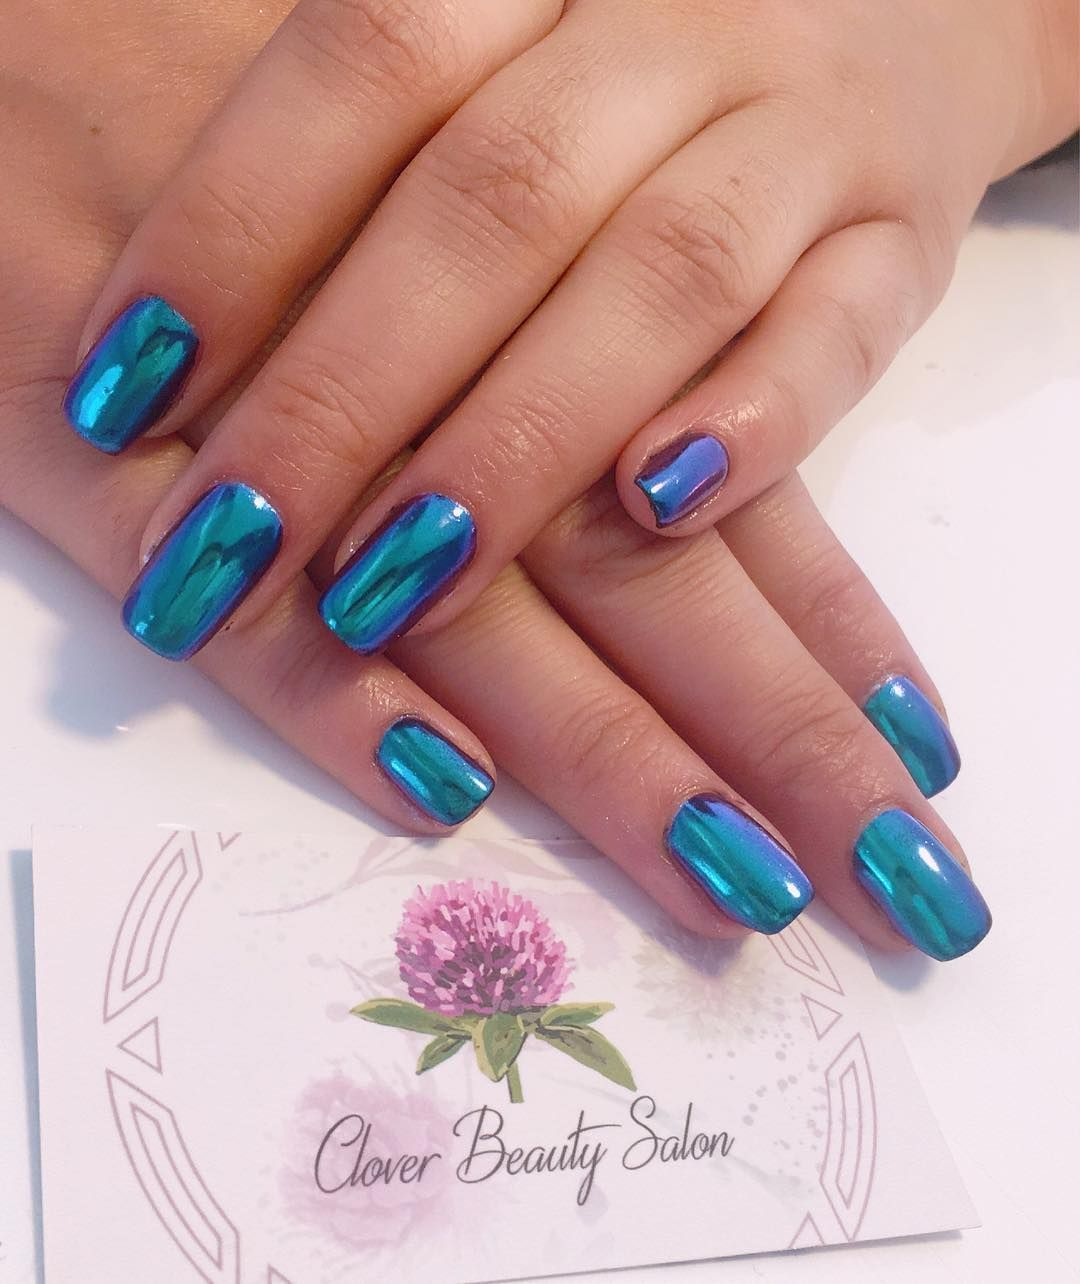 Simple Gel Nail Art Designs: 22 Super Easy Nail Art Designs And Ideas For 2018